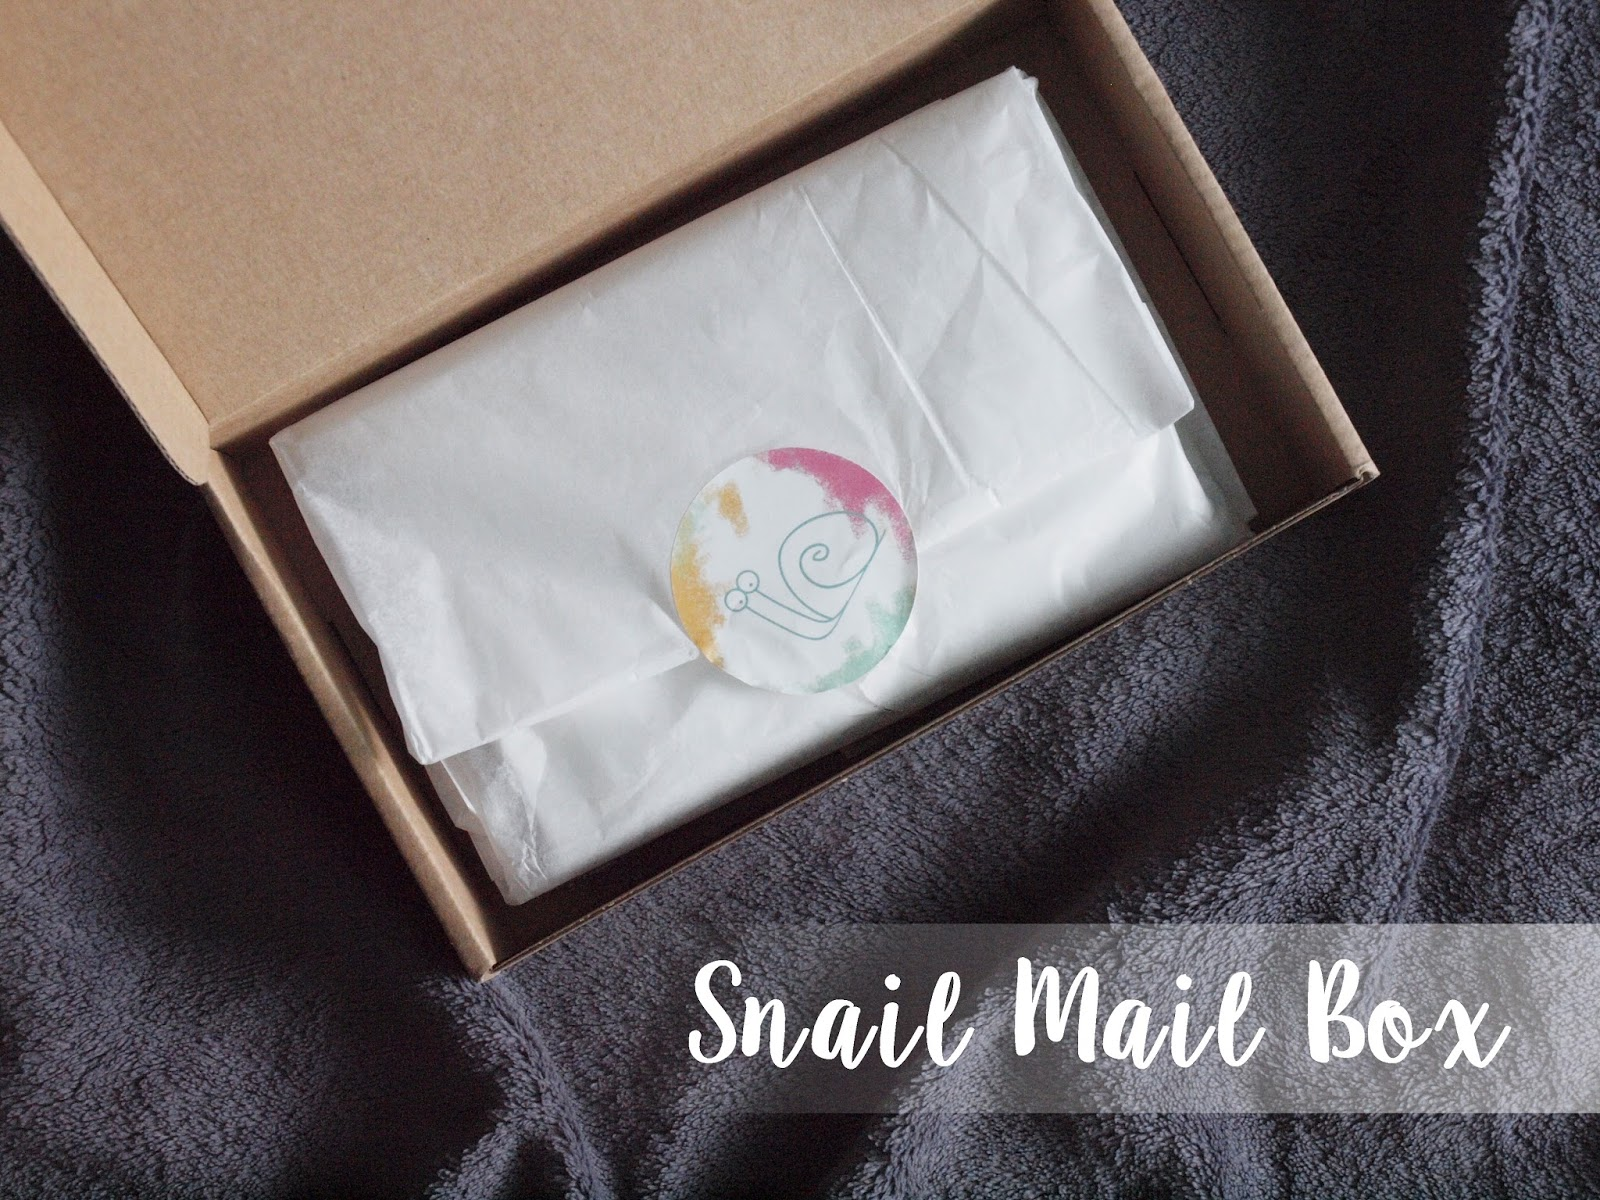 Snail Mail Box